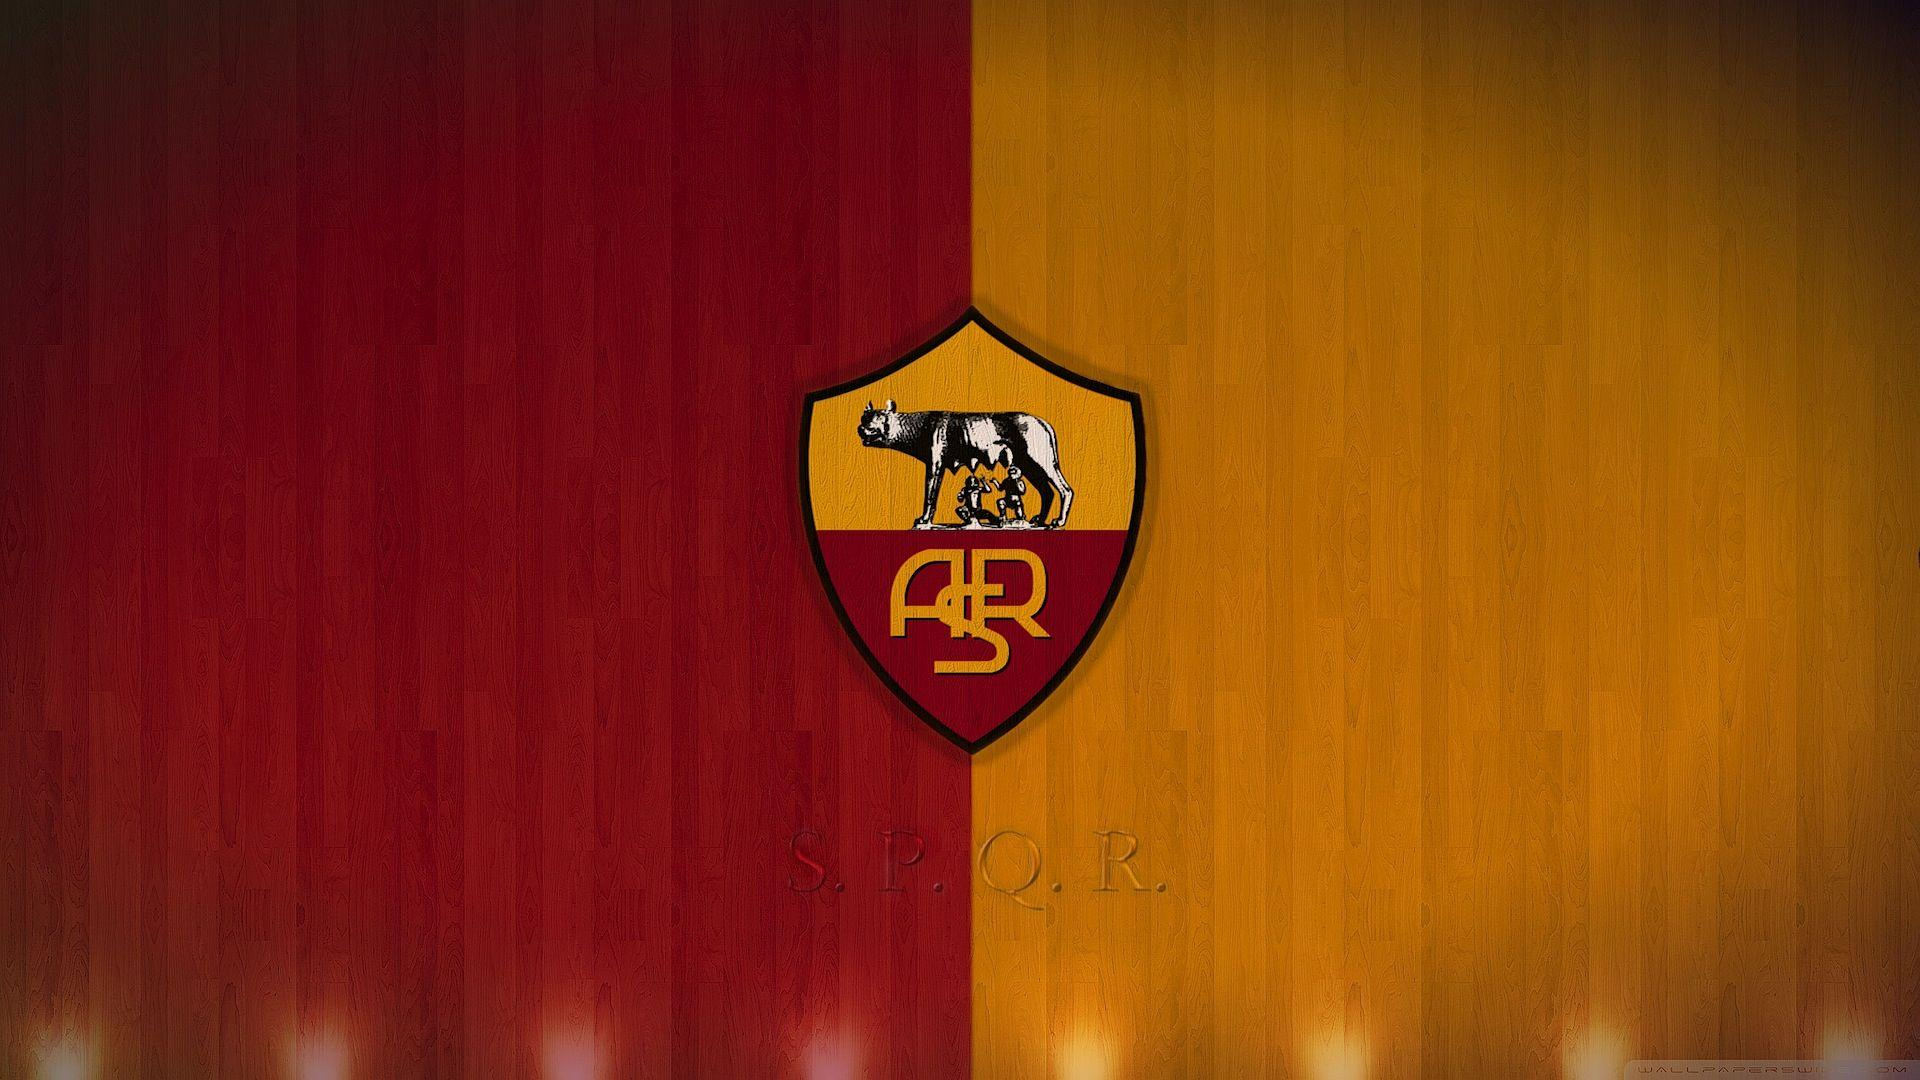 HD As Roma Wallpapers and Photos